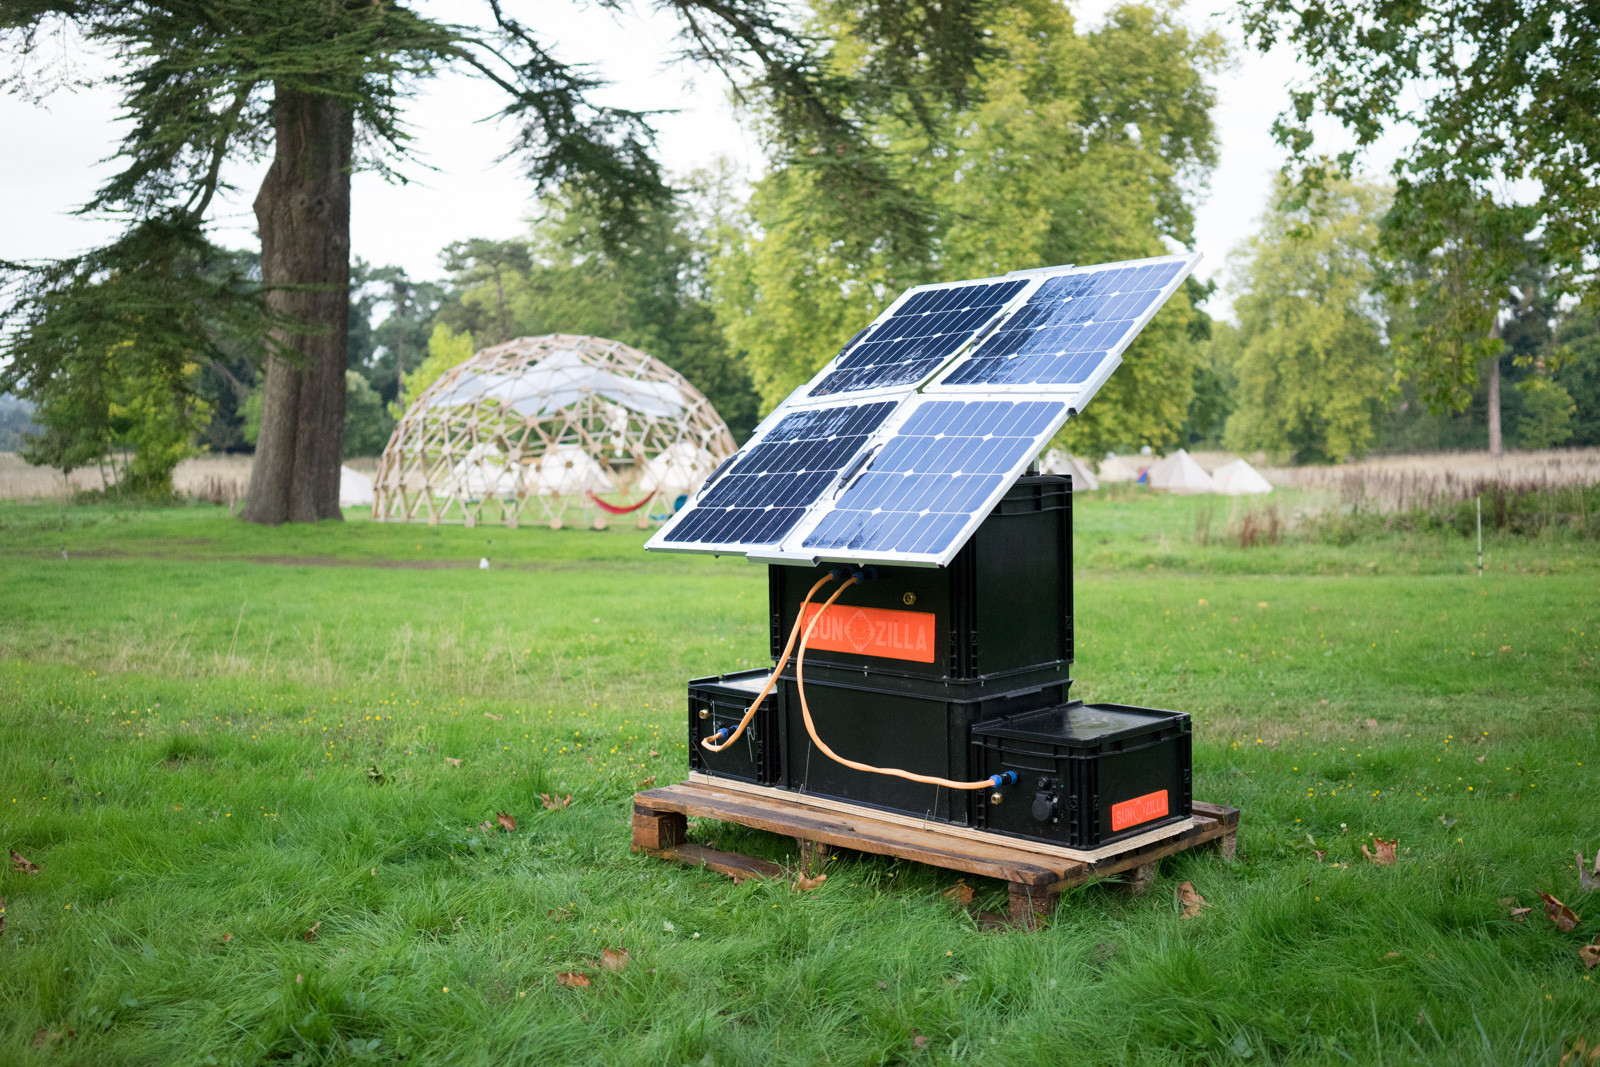 Best ideas about DIY Solar Generator . Save or Pin This Open Source DIY Solar Generator Unfolds Like a Flower Now.